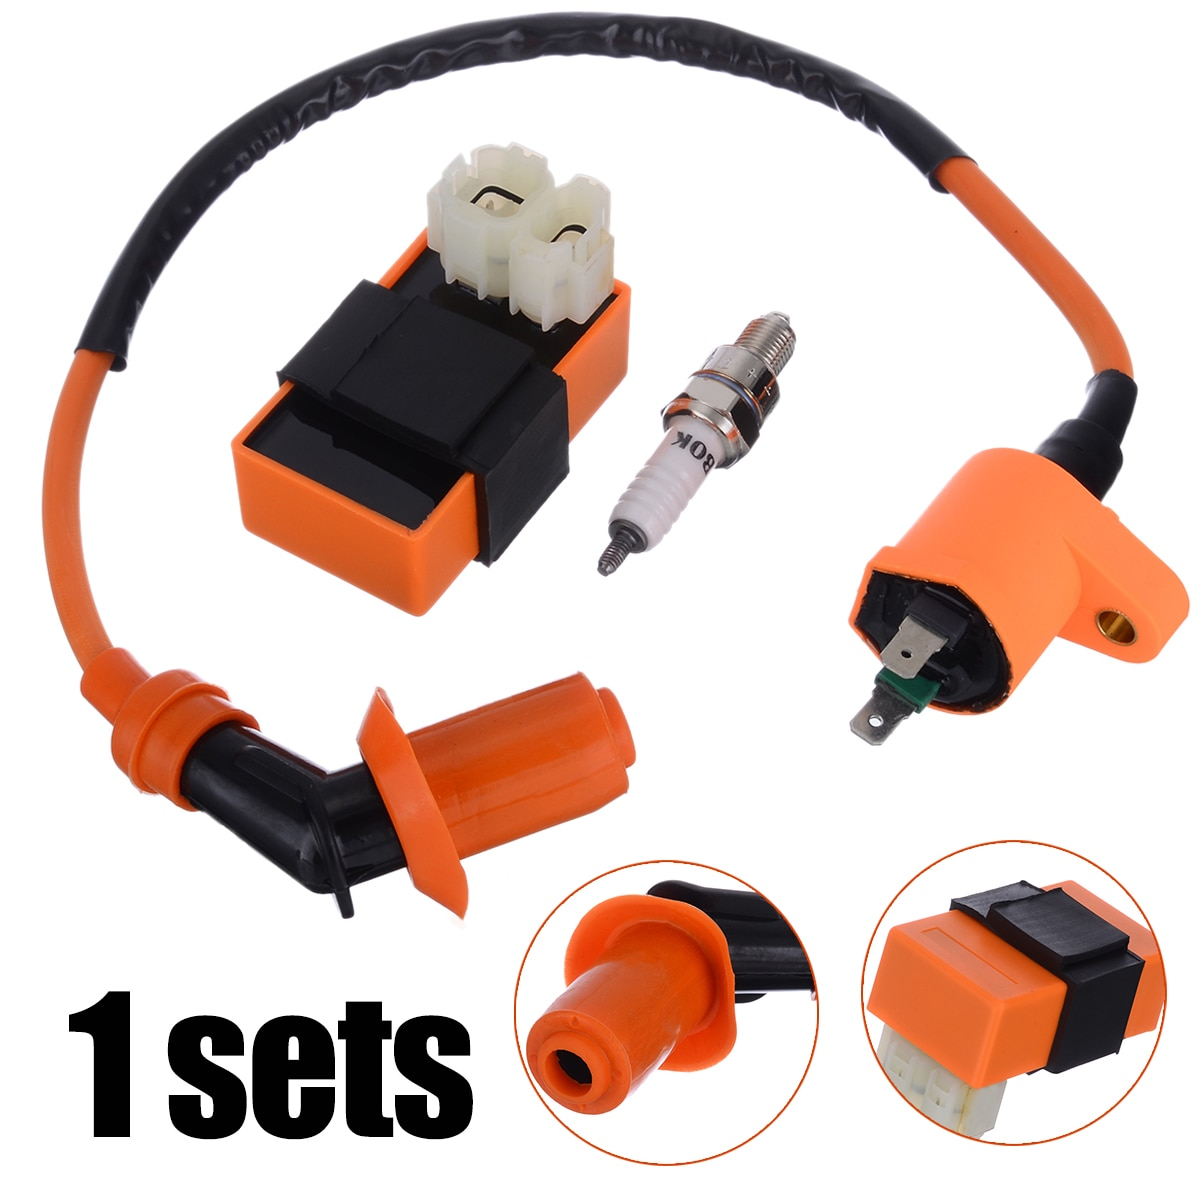 1set Motorbike Ingition Racing CDI + Spark Plug + Ignition Coil Kits For GY6 50/125/150CC 4-stroke Scooter Parts Accessories